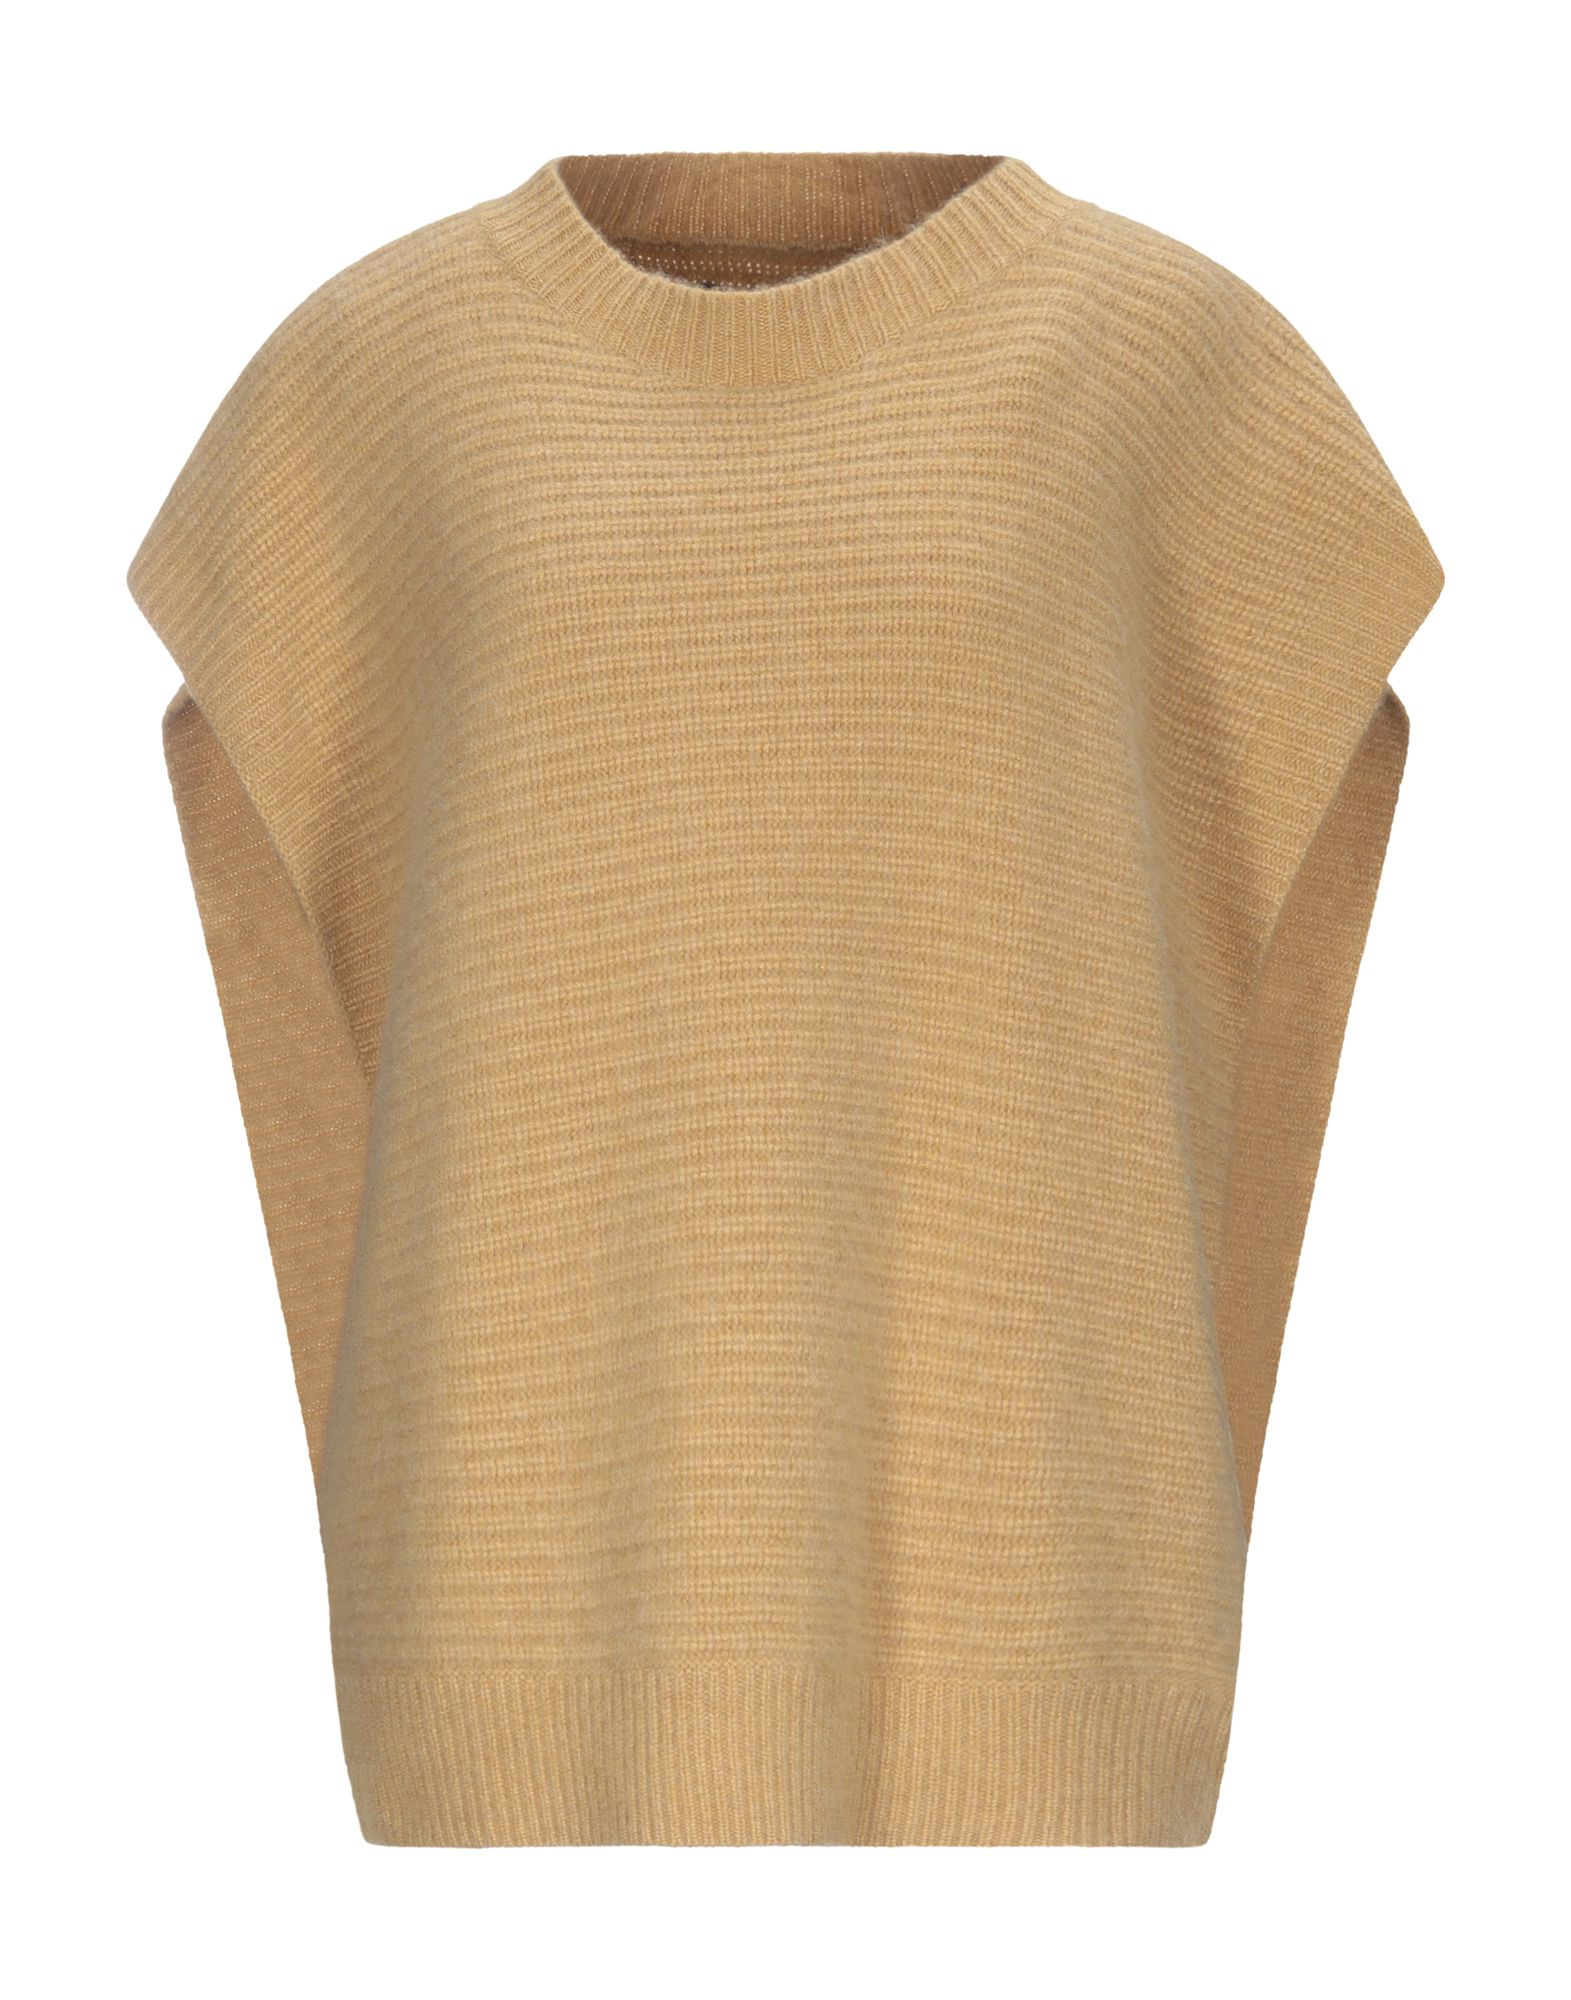 ISABEL MARANT Capes & ponchos. knitted, no appliqués, basic solid color, round collar, no pockets, sleeveless, unlined, single-breasted. 100% Cashmere